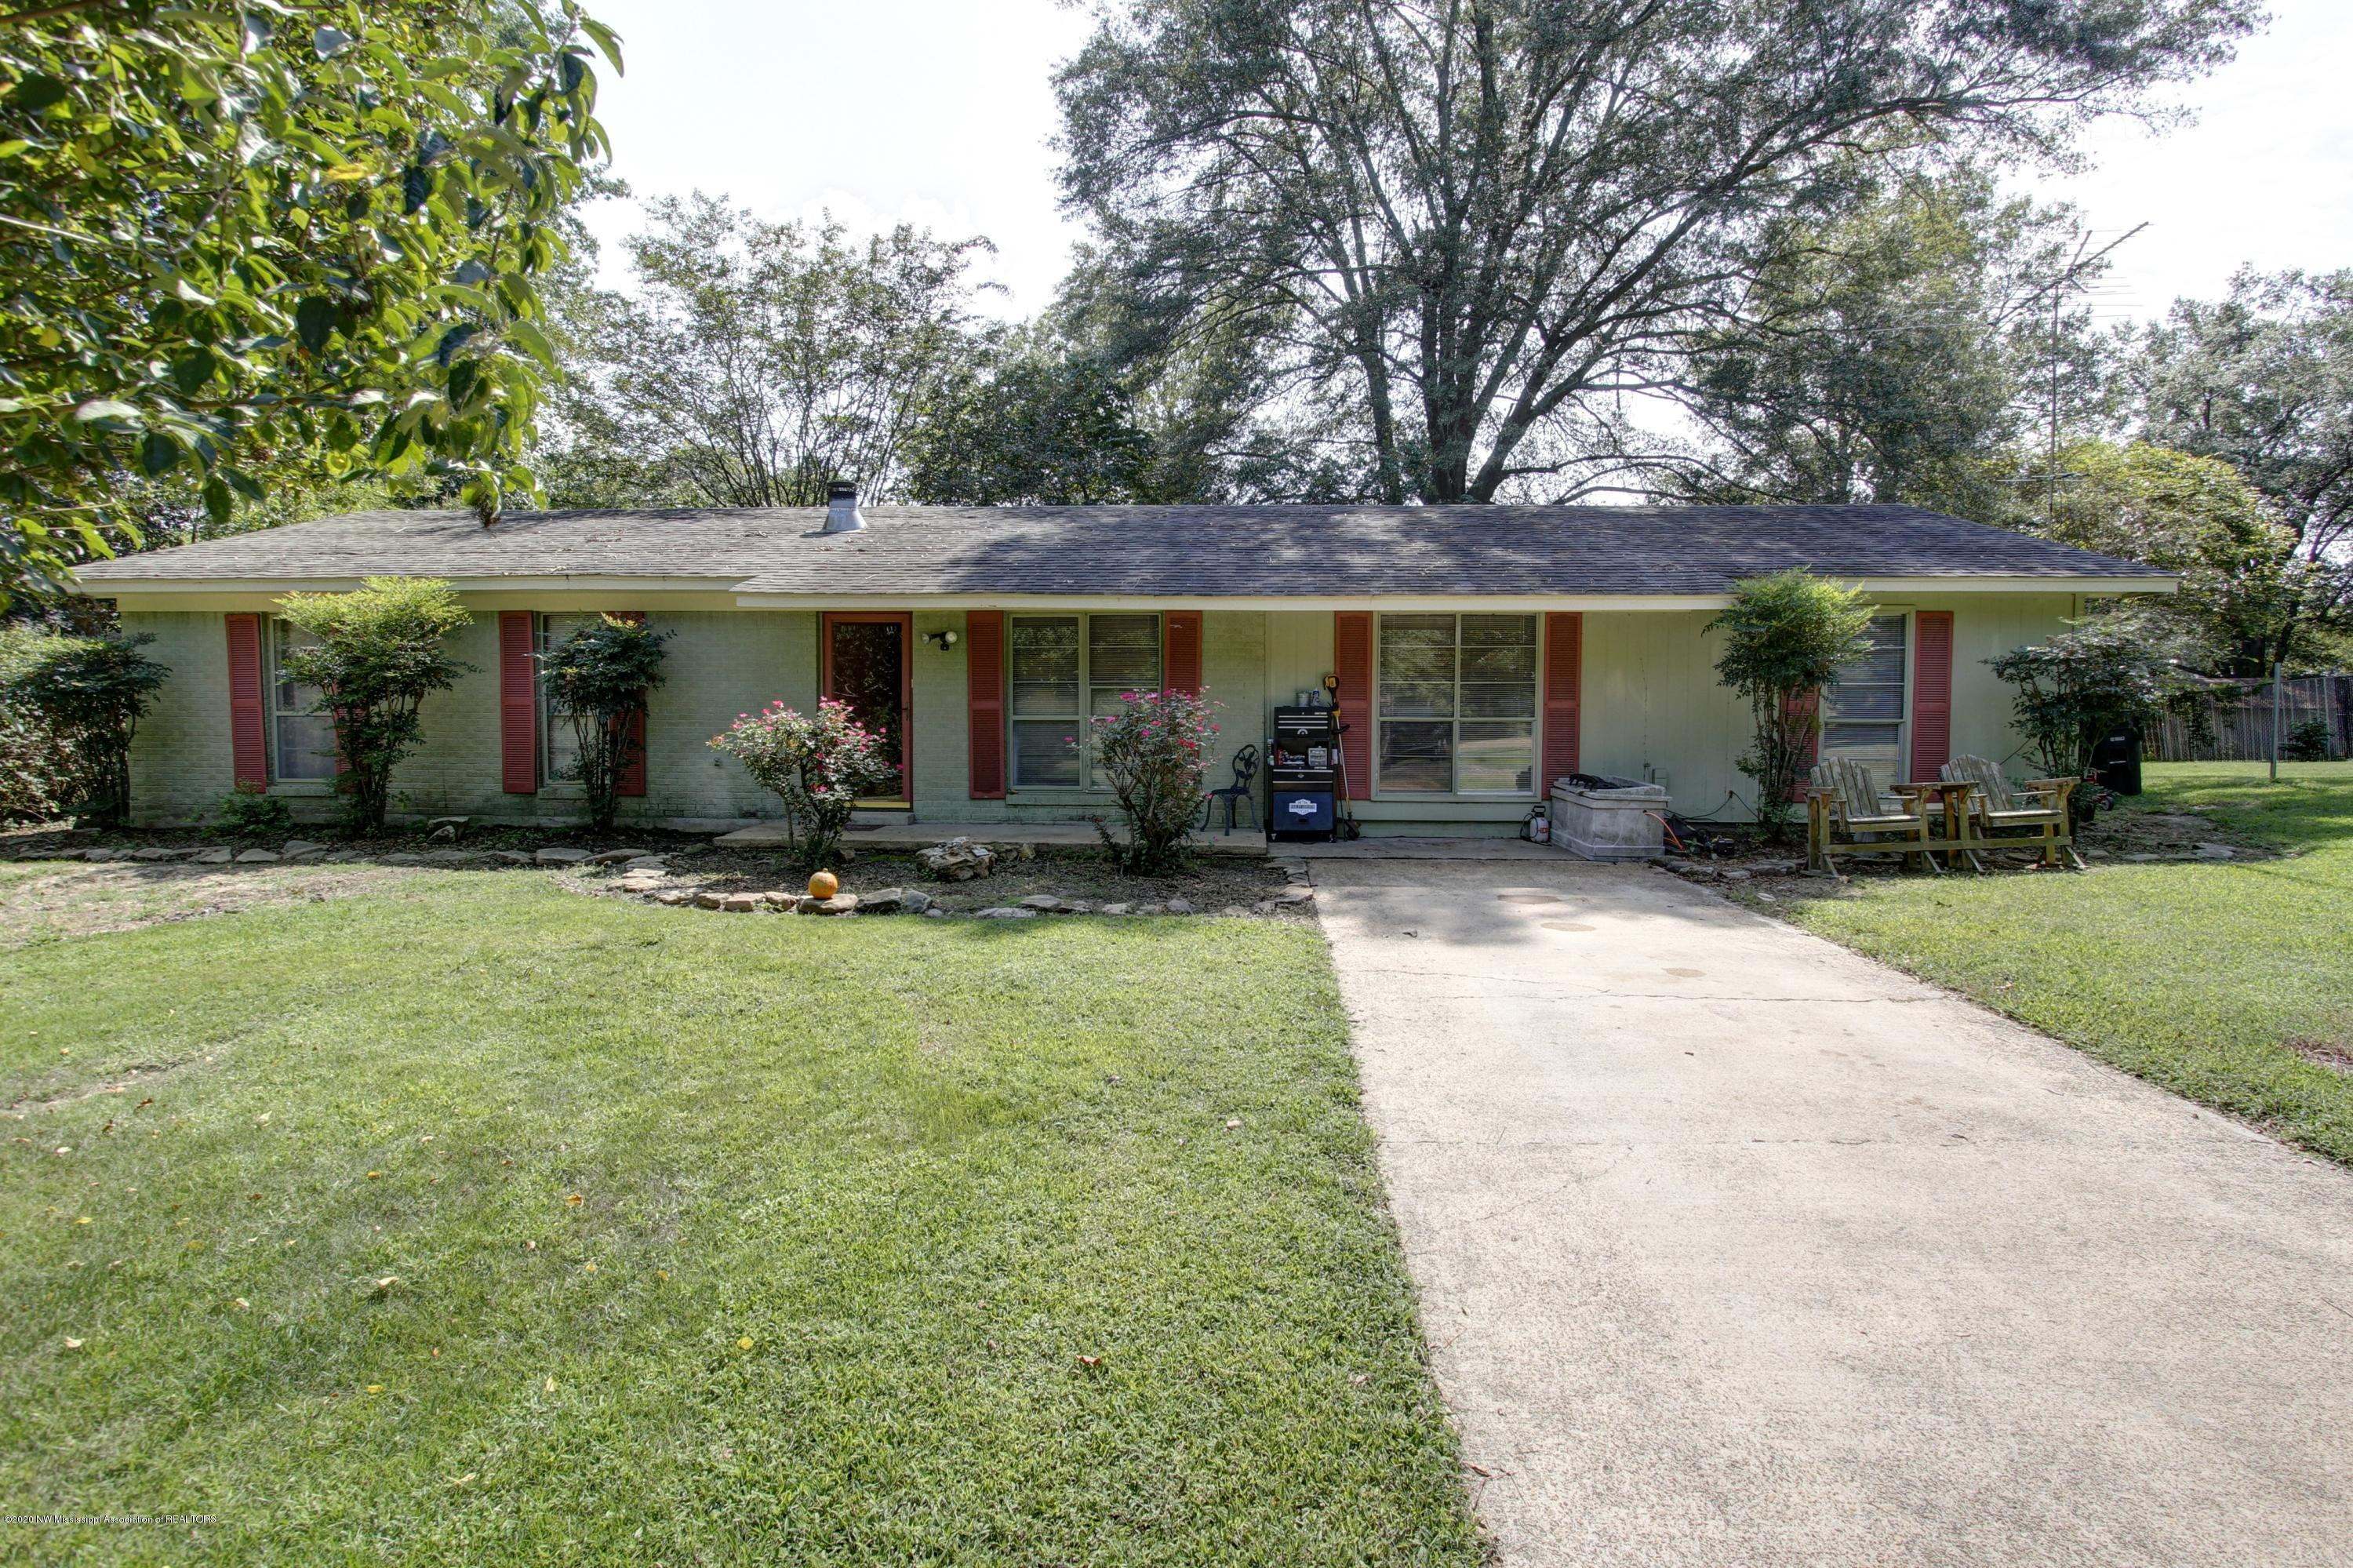 15883 Arkabutla Road, Tate, Mississippi 38665, 3 Bedrooms Bedrooms, ,2 BathroomsBathrooms,Residential,For Sale,Arkabutla,331466